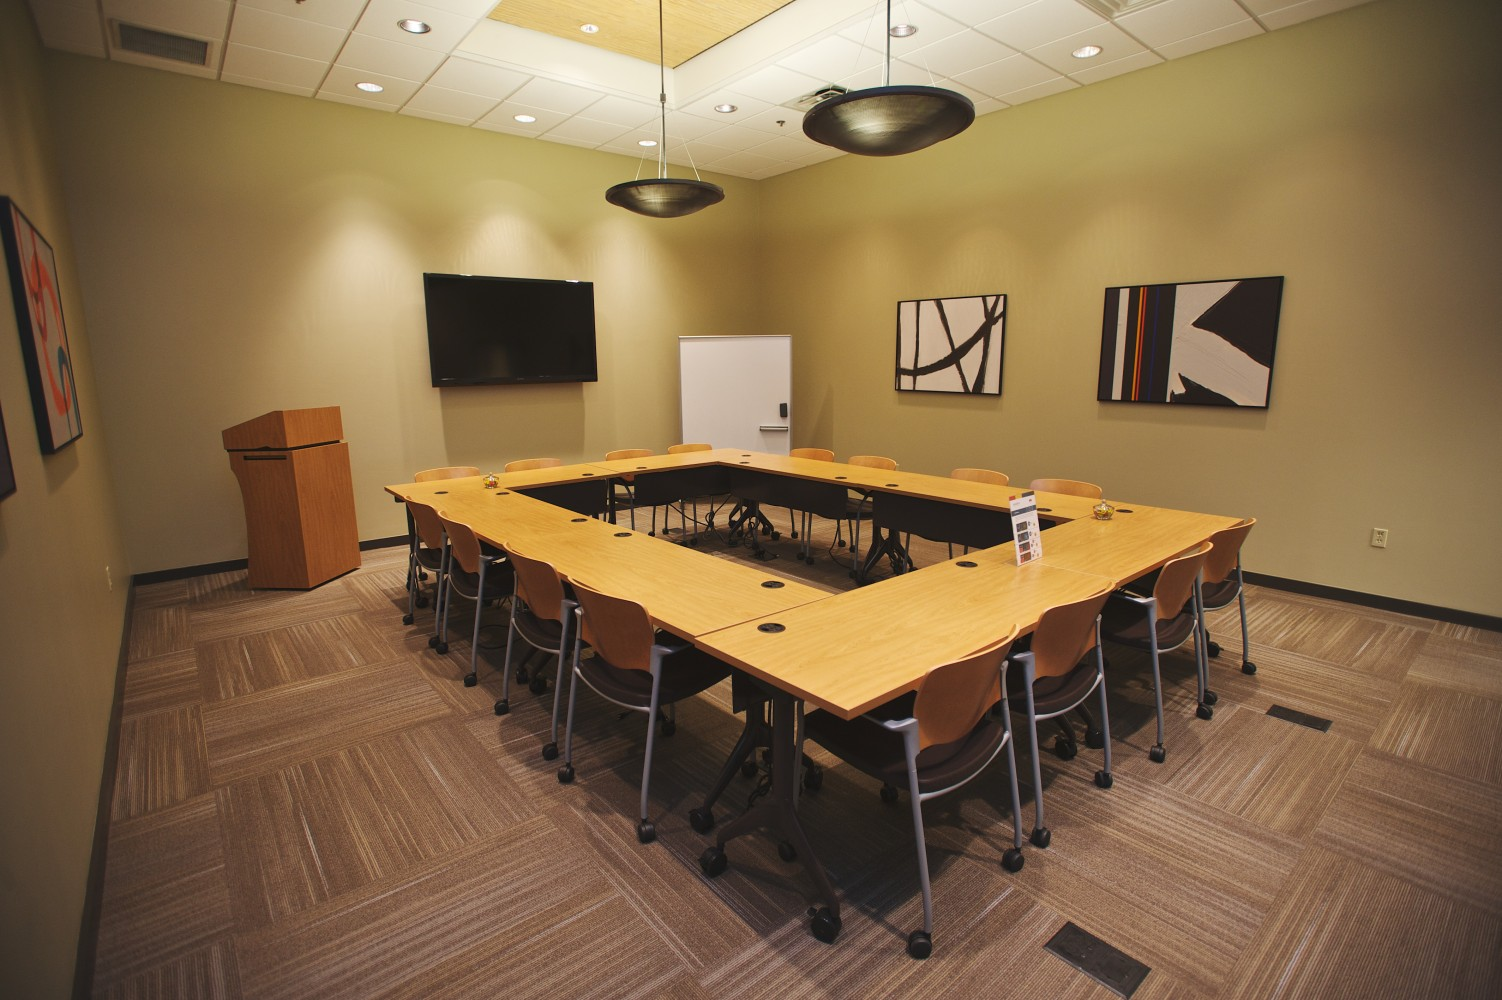 Small conference space for rent in Brentwood, TN, conference room rentals, training room rentals and corporate training rooms at Envision, call today!